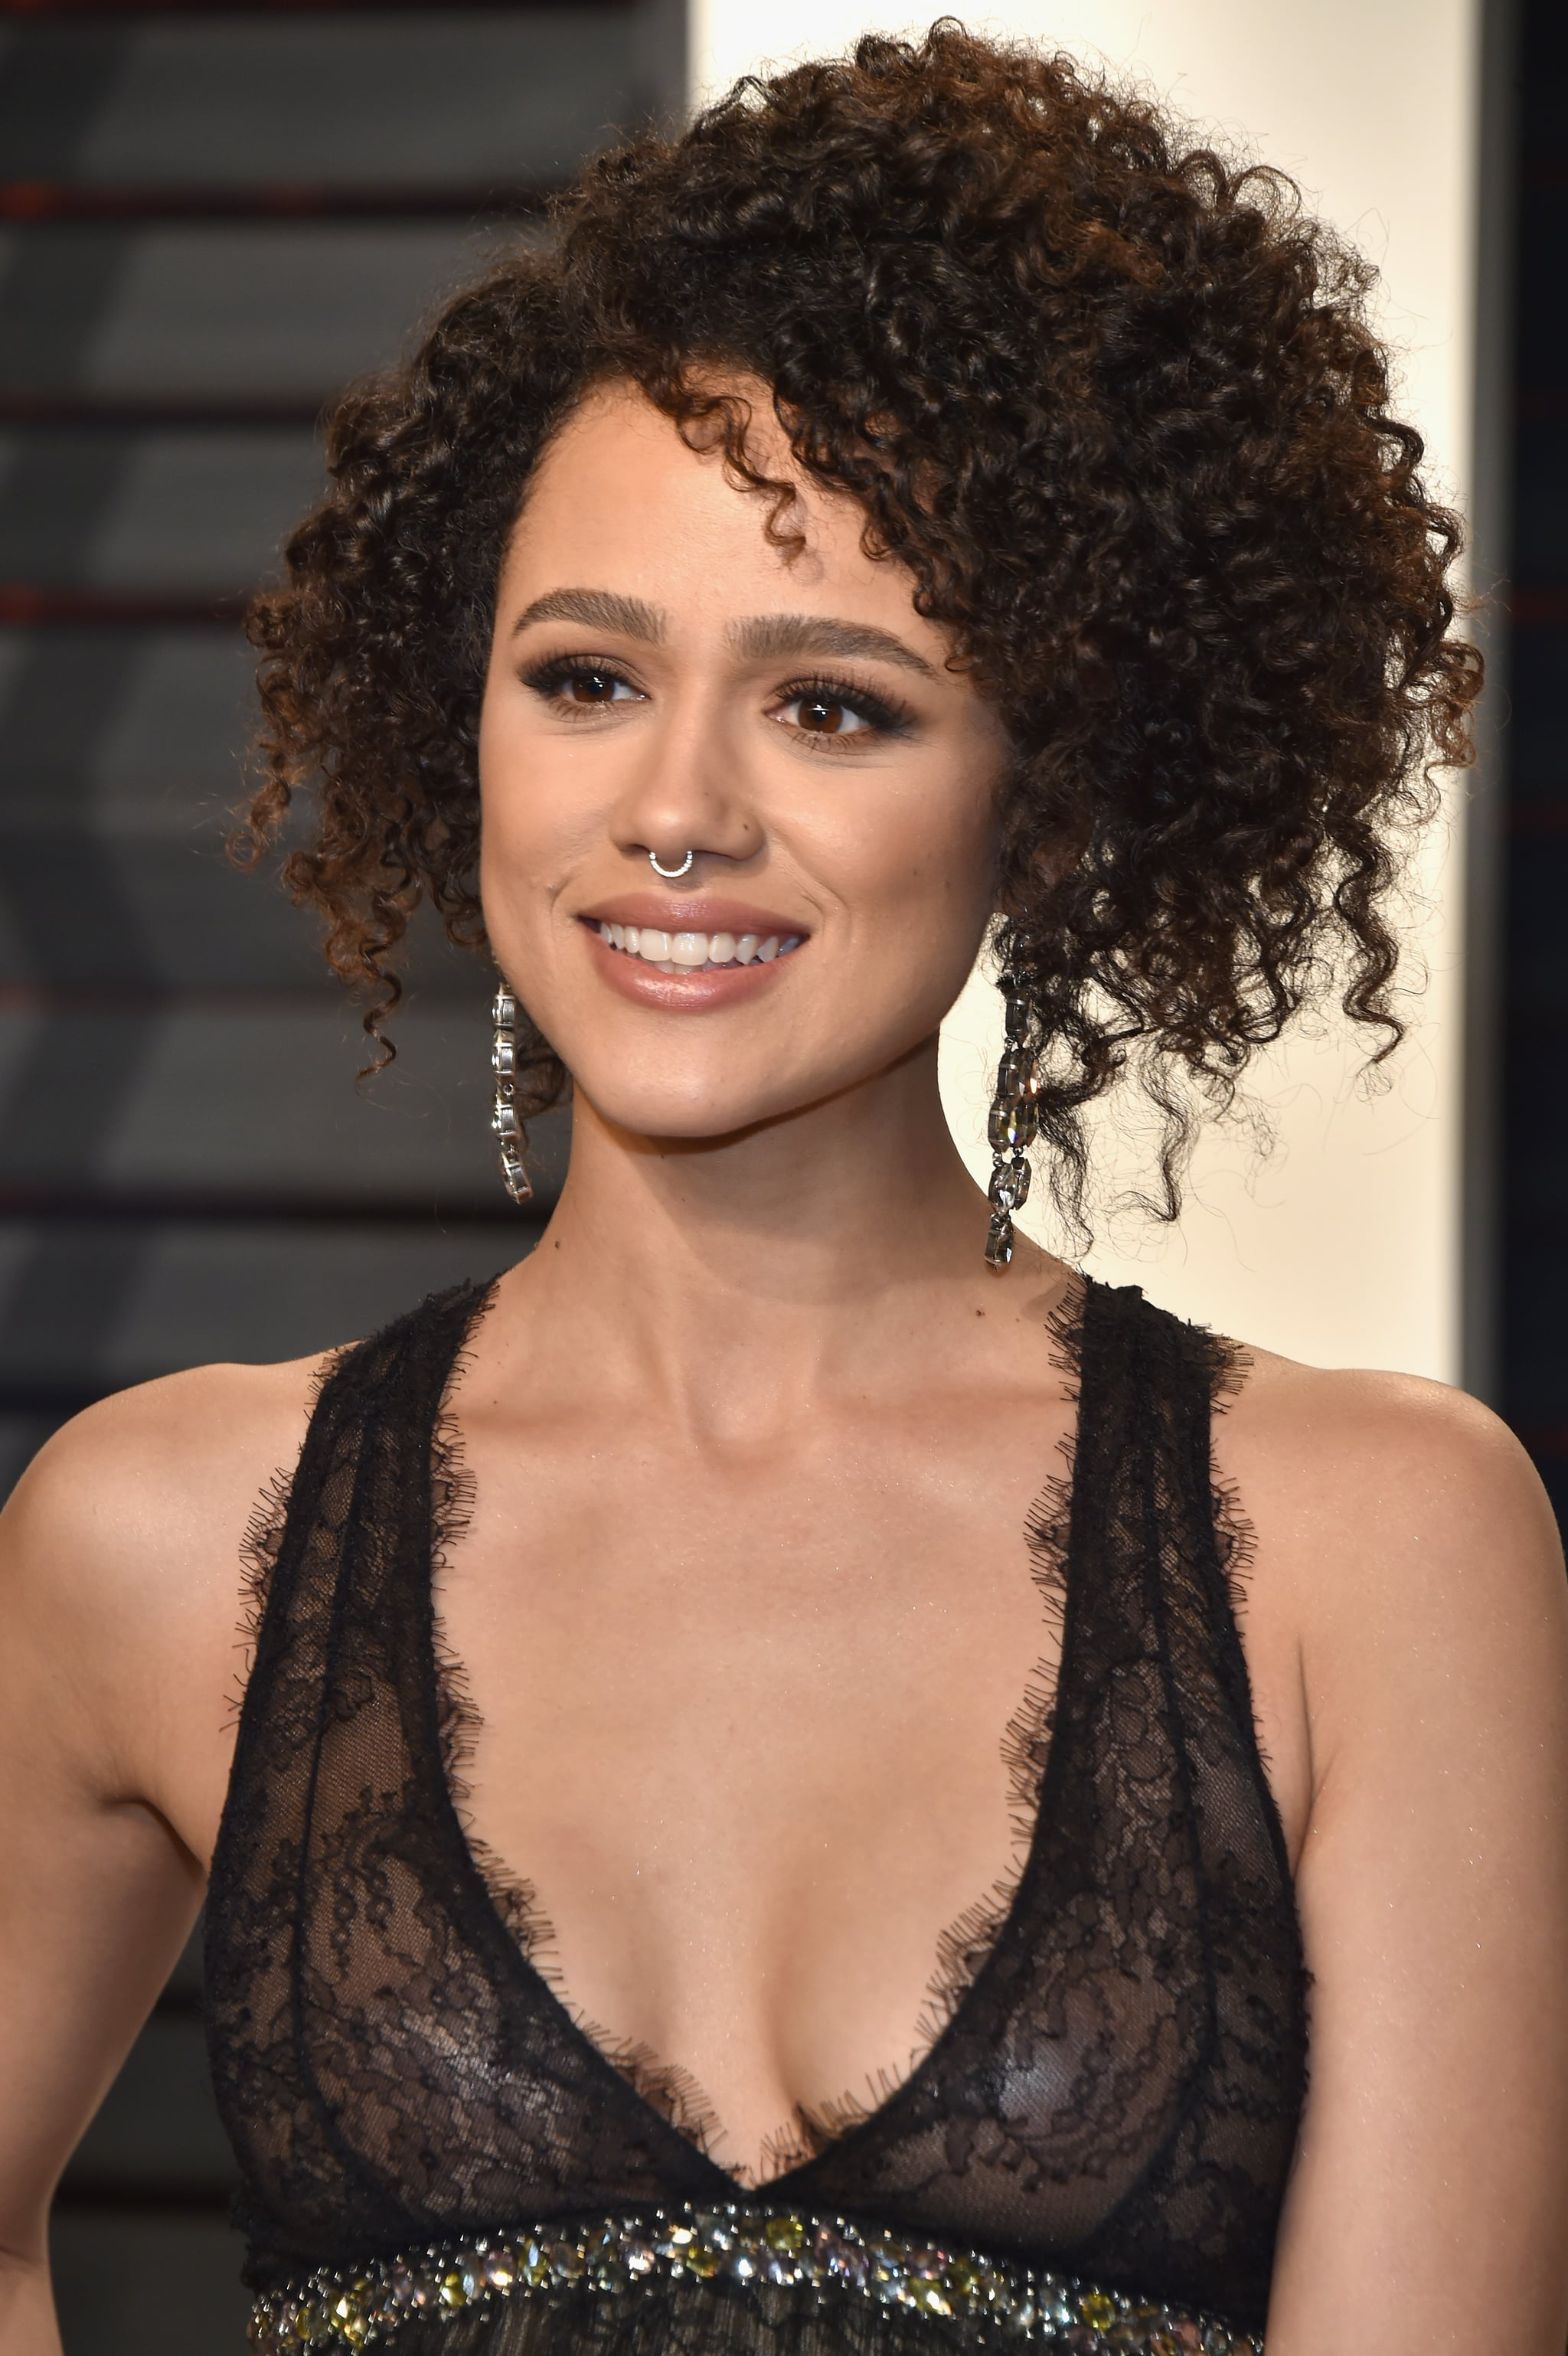 Celebrity Entertainment These Sexy Nathalie Emmanuel Pics Will